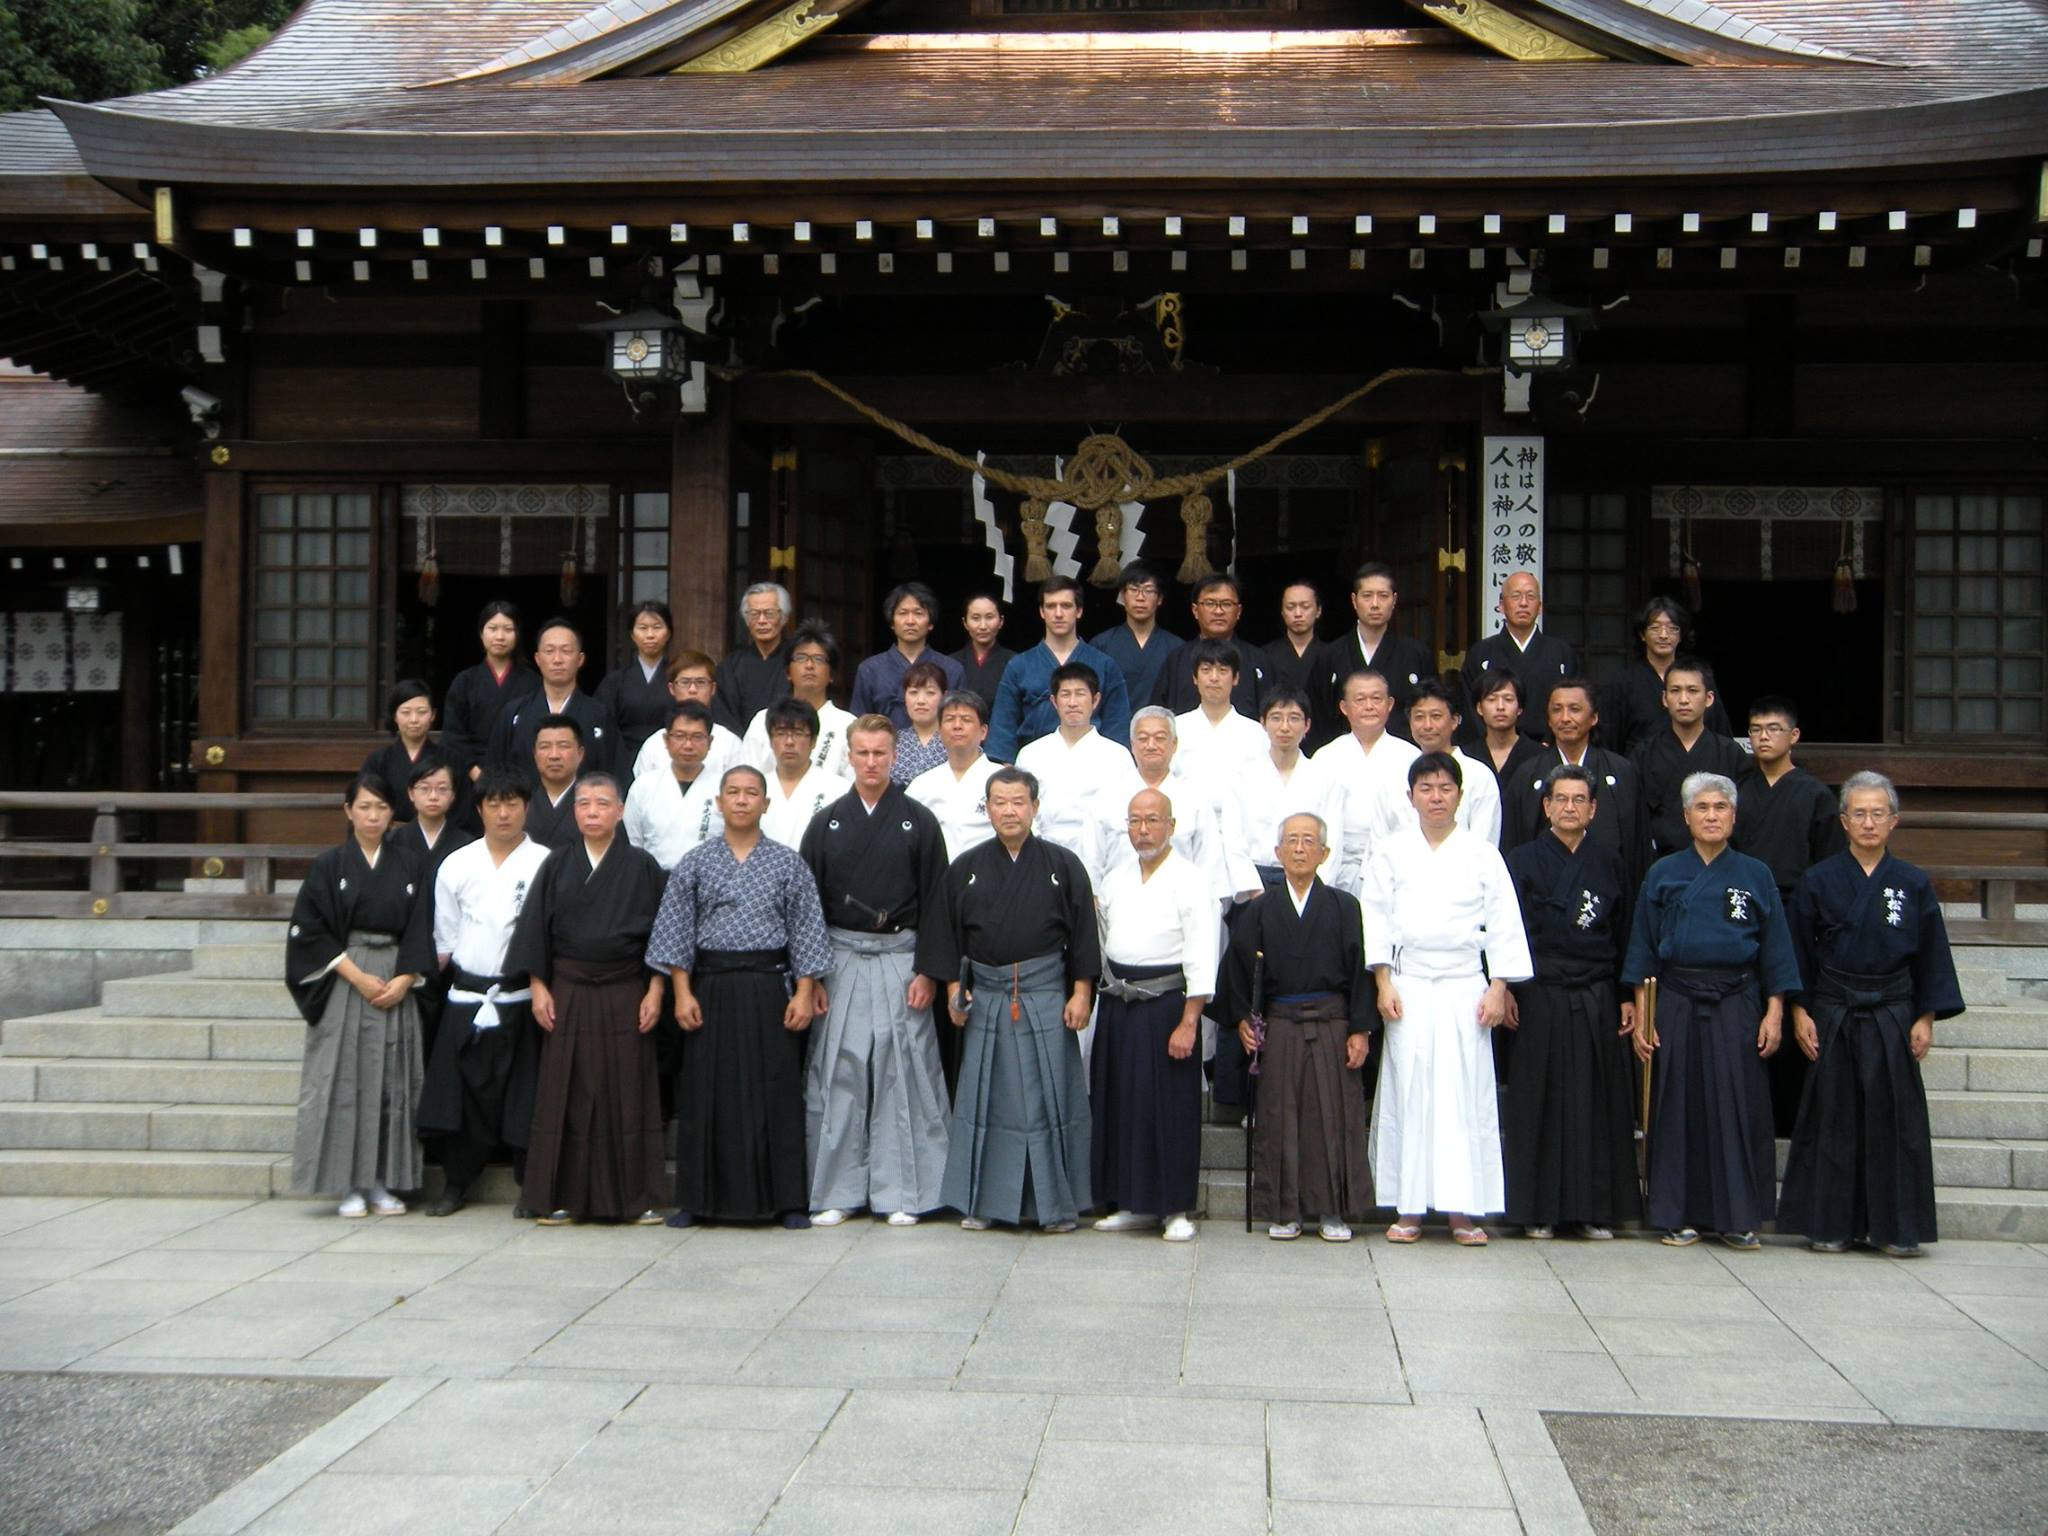 The Kumamoto Earthquake Relief Charity Martial Arts Demonstration 2016. Kajitsuka Sensei is in the front row, center, in white top and blue hakama.